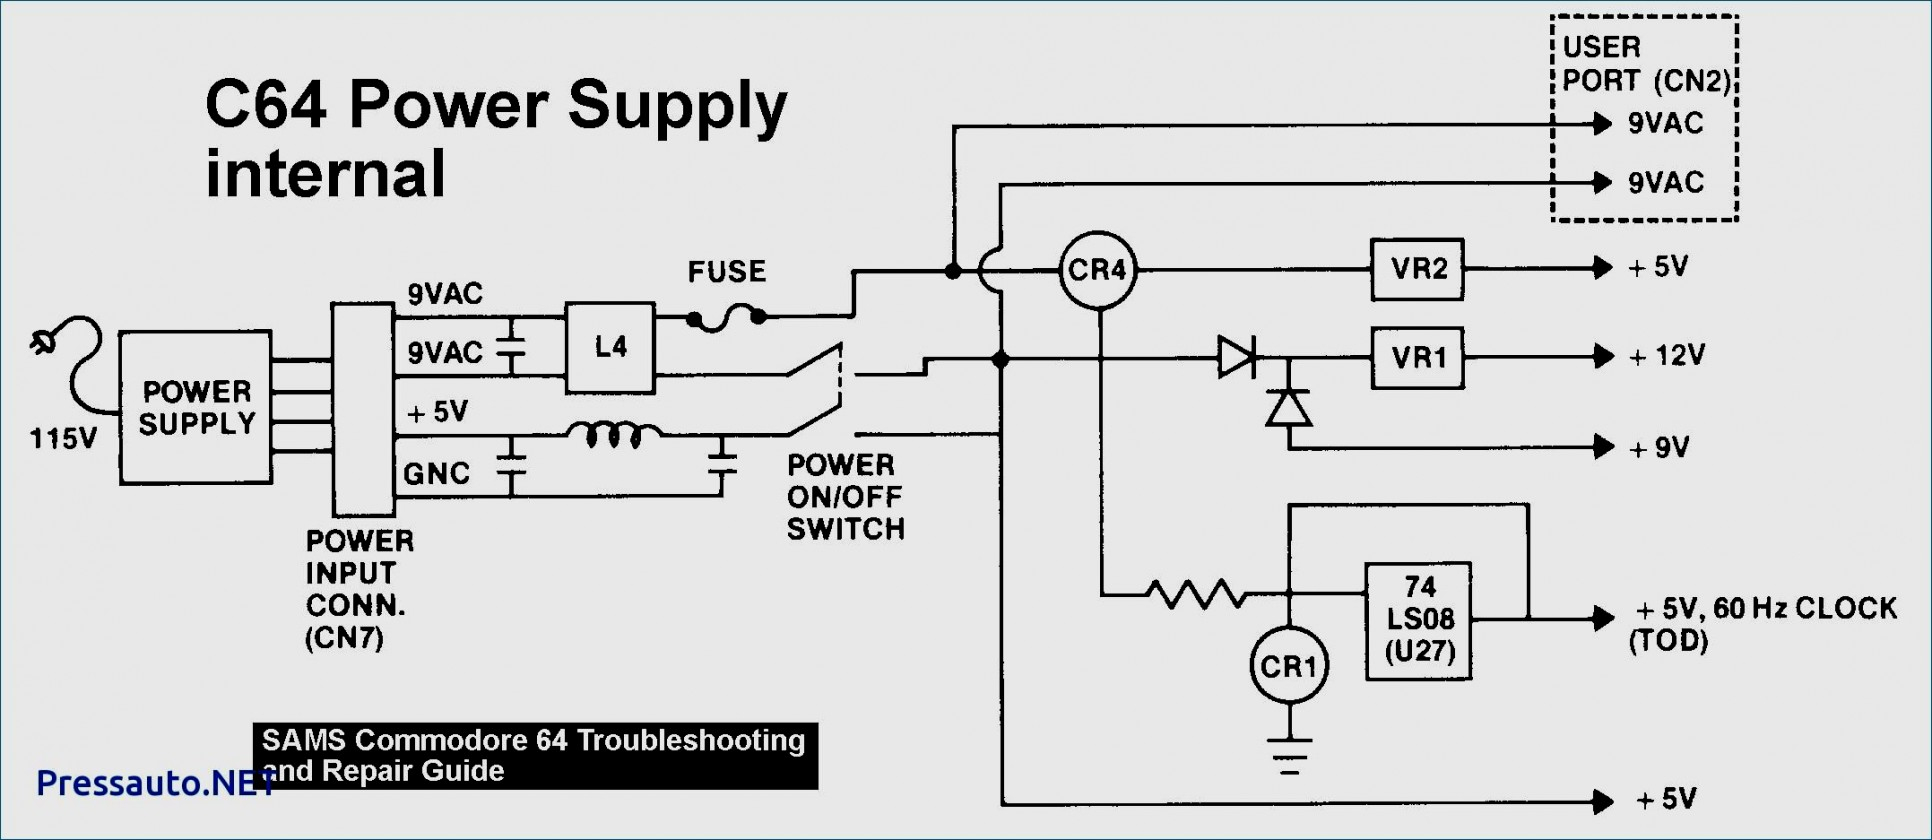 hight resolution of tv schematic circuit diagram further hp power supply pinout further wiring diagram as well pump alternating relay diagram further fiat